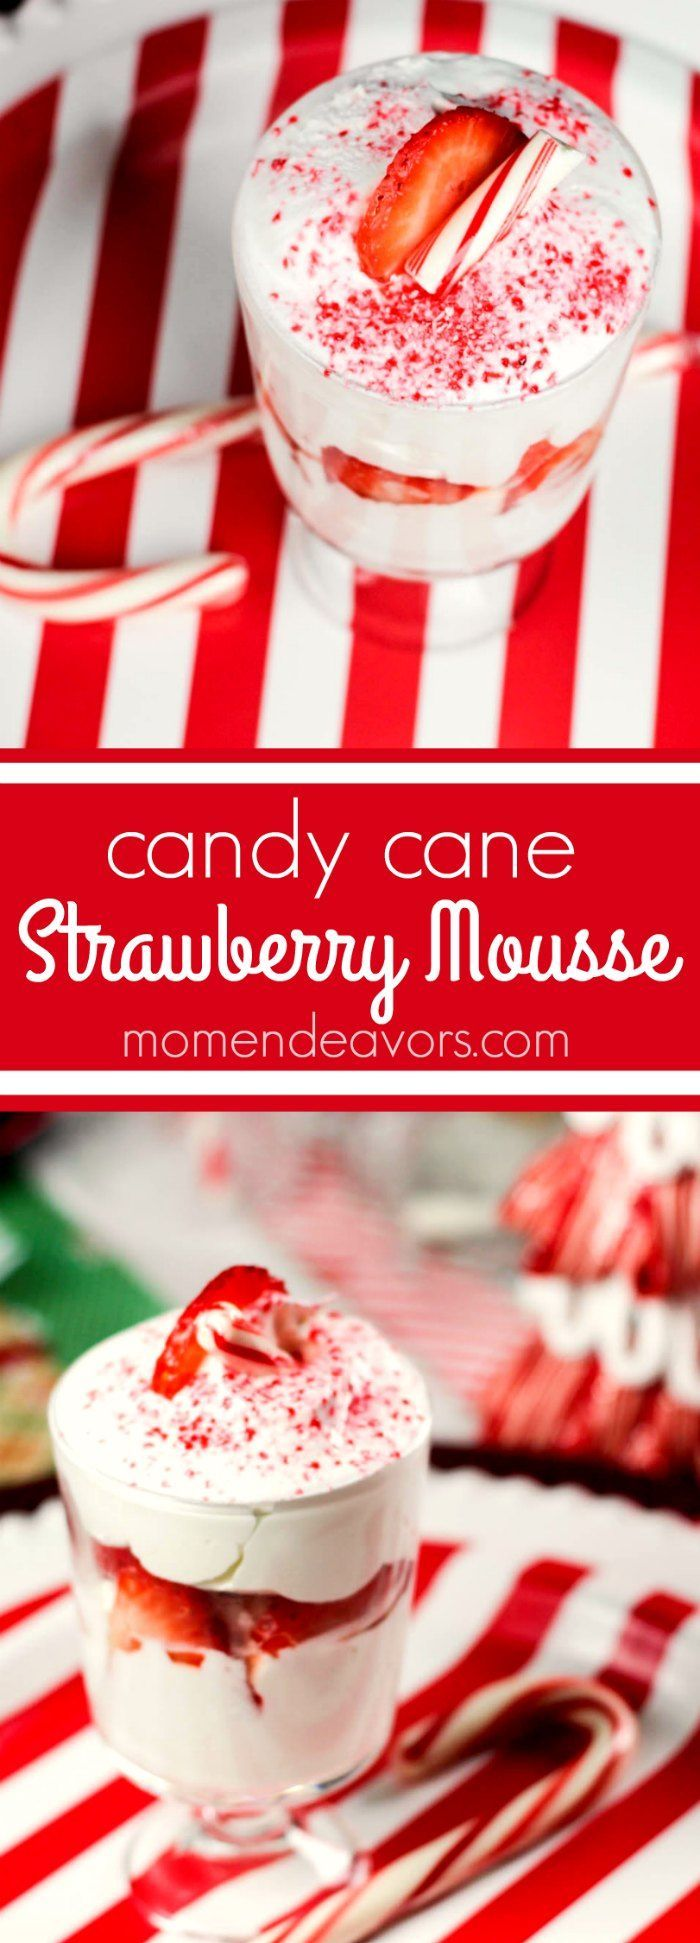 Candy Cane Strawberry Mousse - a light & tasty holiday dessert!